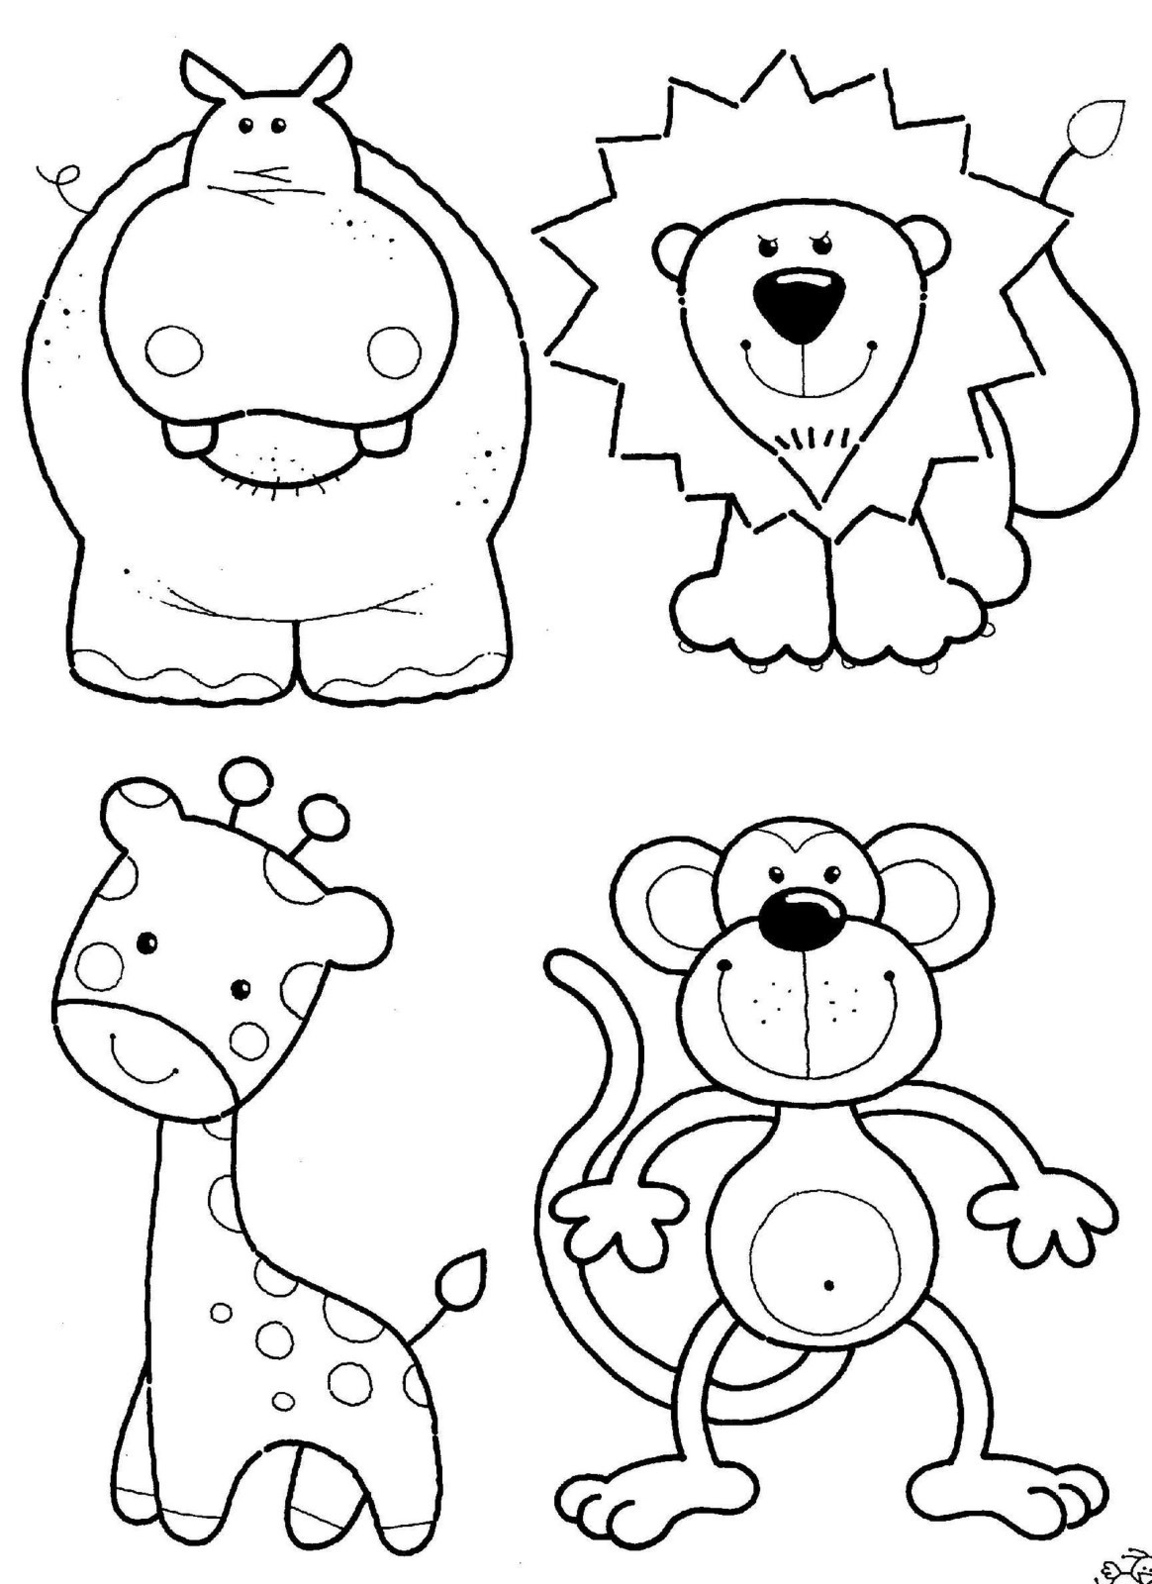 coloring images of animals jungle animal coloring pages to download and print for free animals images of coloring